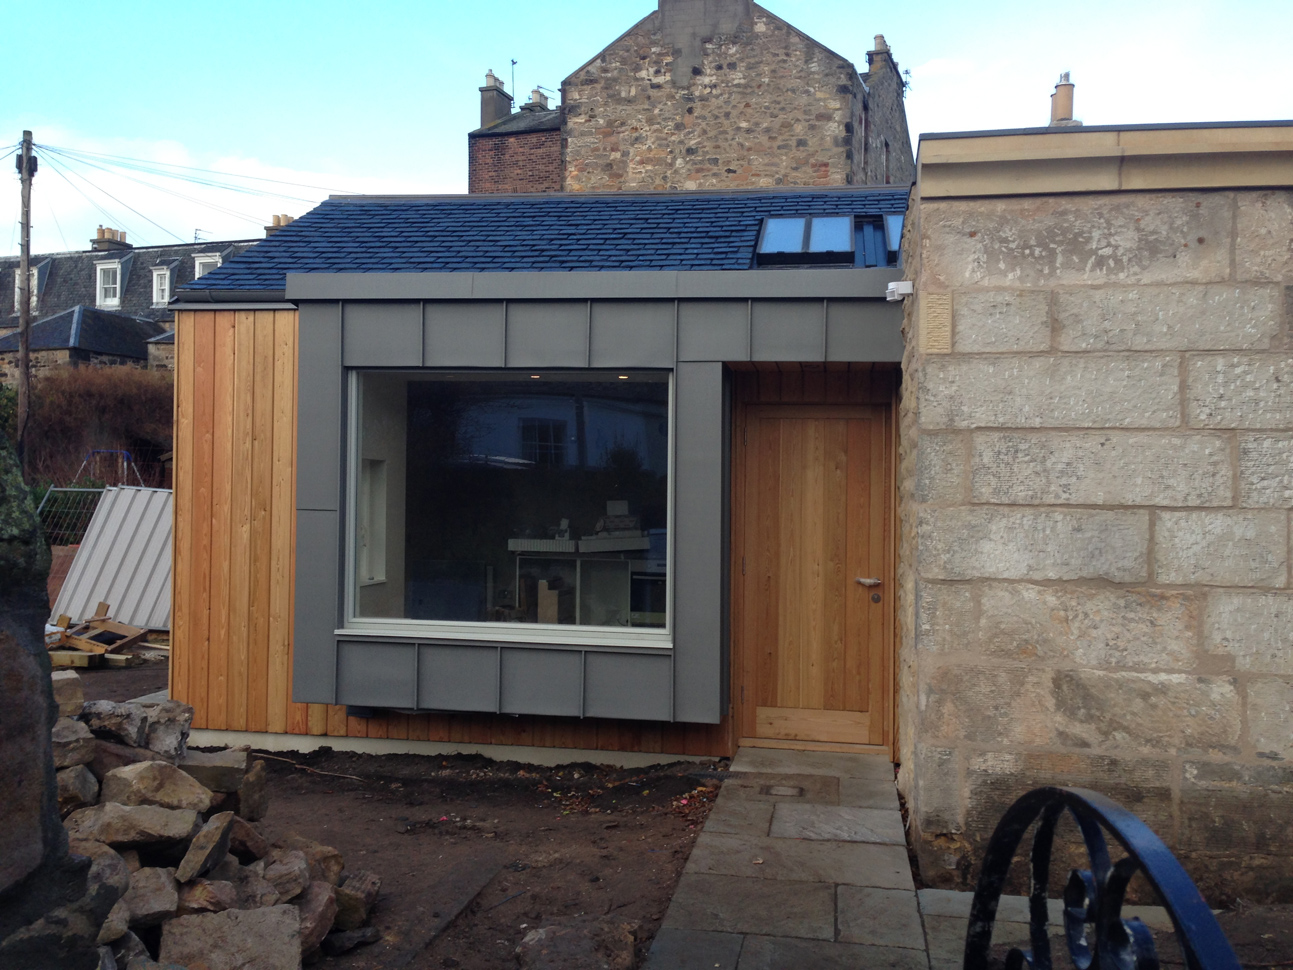 Cladding Extension Lead : Helen lucas architects edinburgh news tag timber